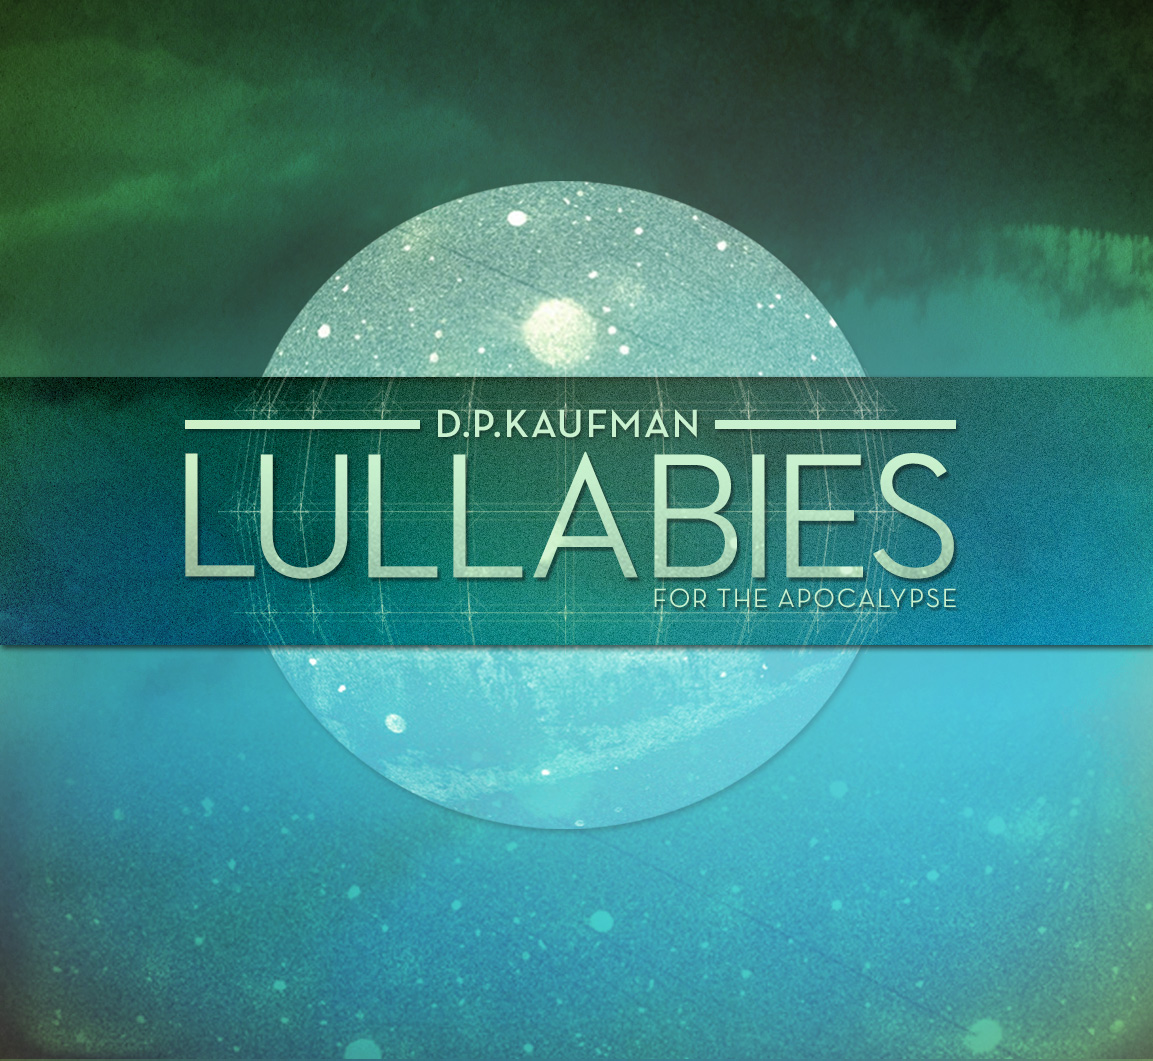 Lullabies For The Apocalypse D.P.KAUFMAN